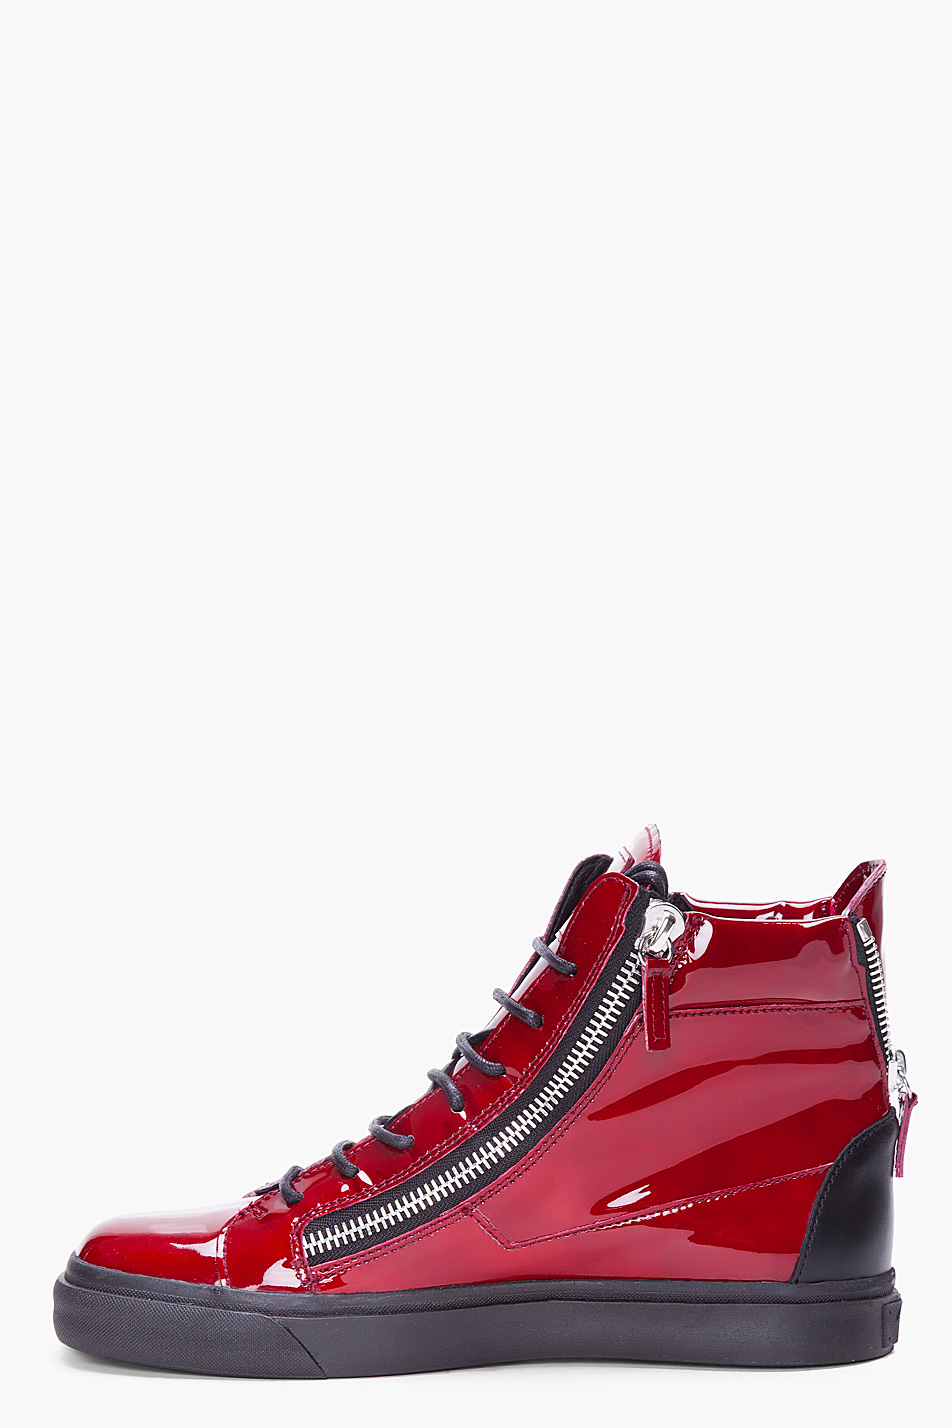 Giuseppe Zanotti Red Patent Leather Sneakers In Red For